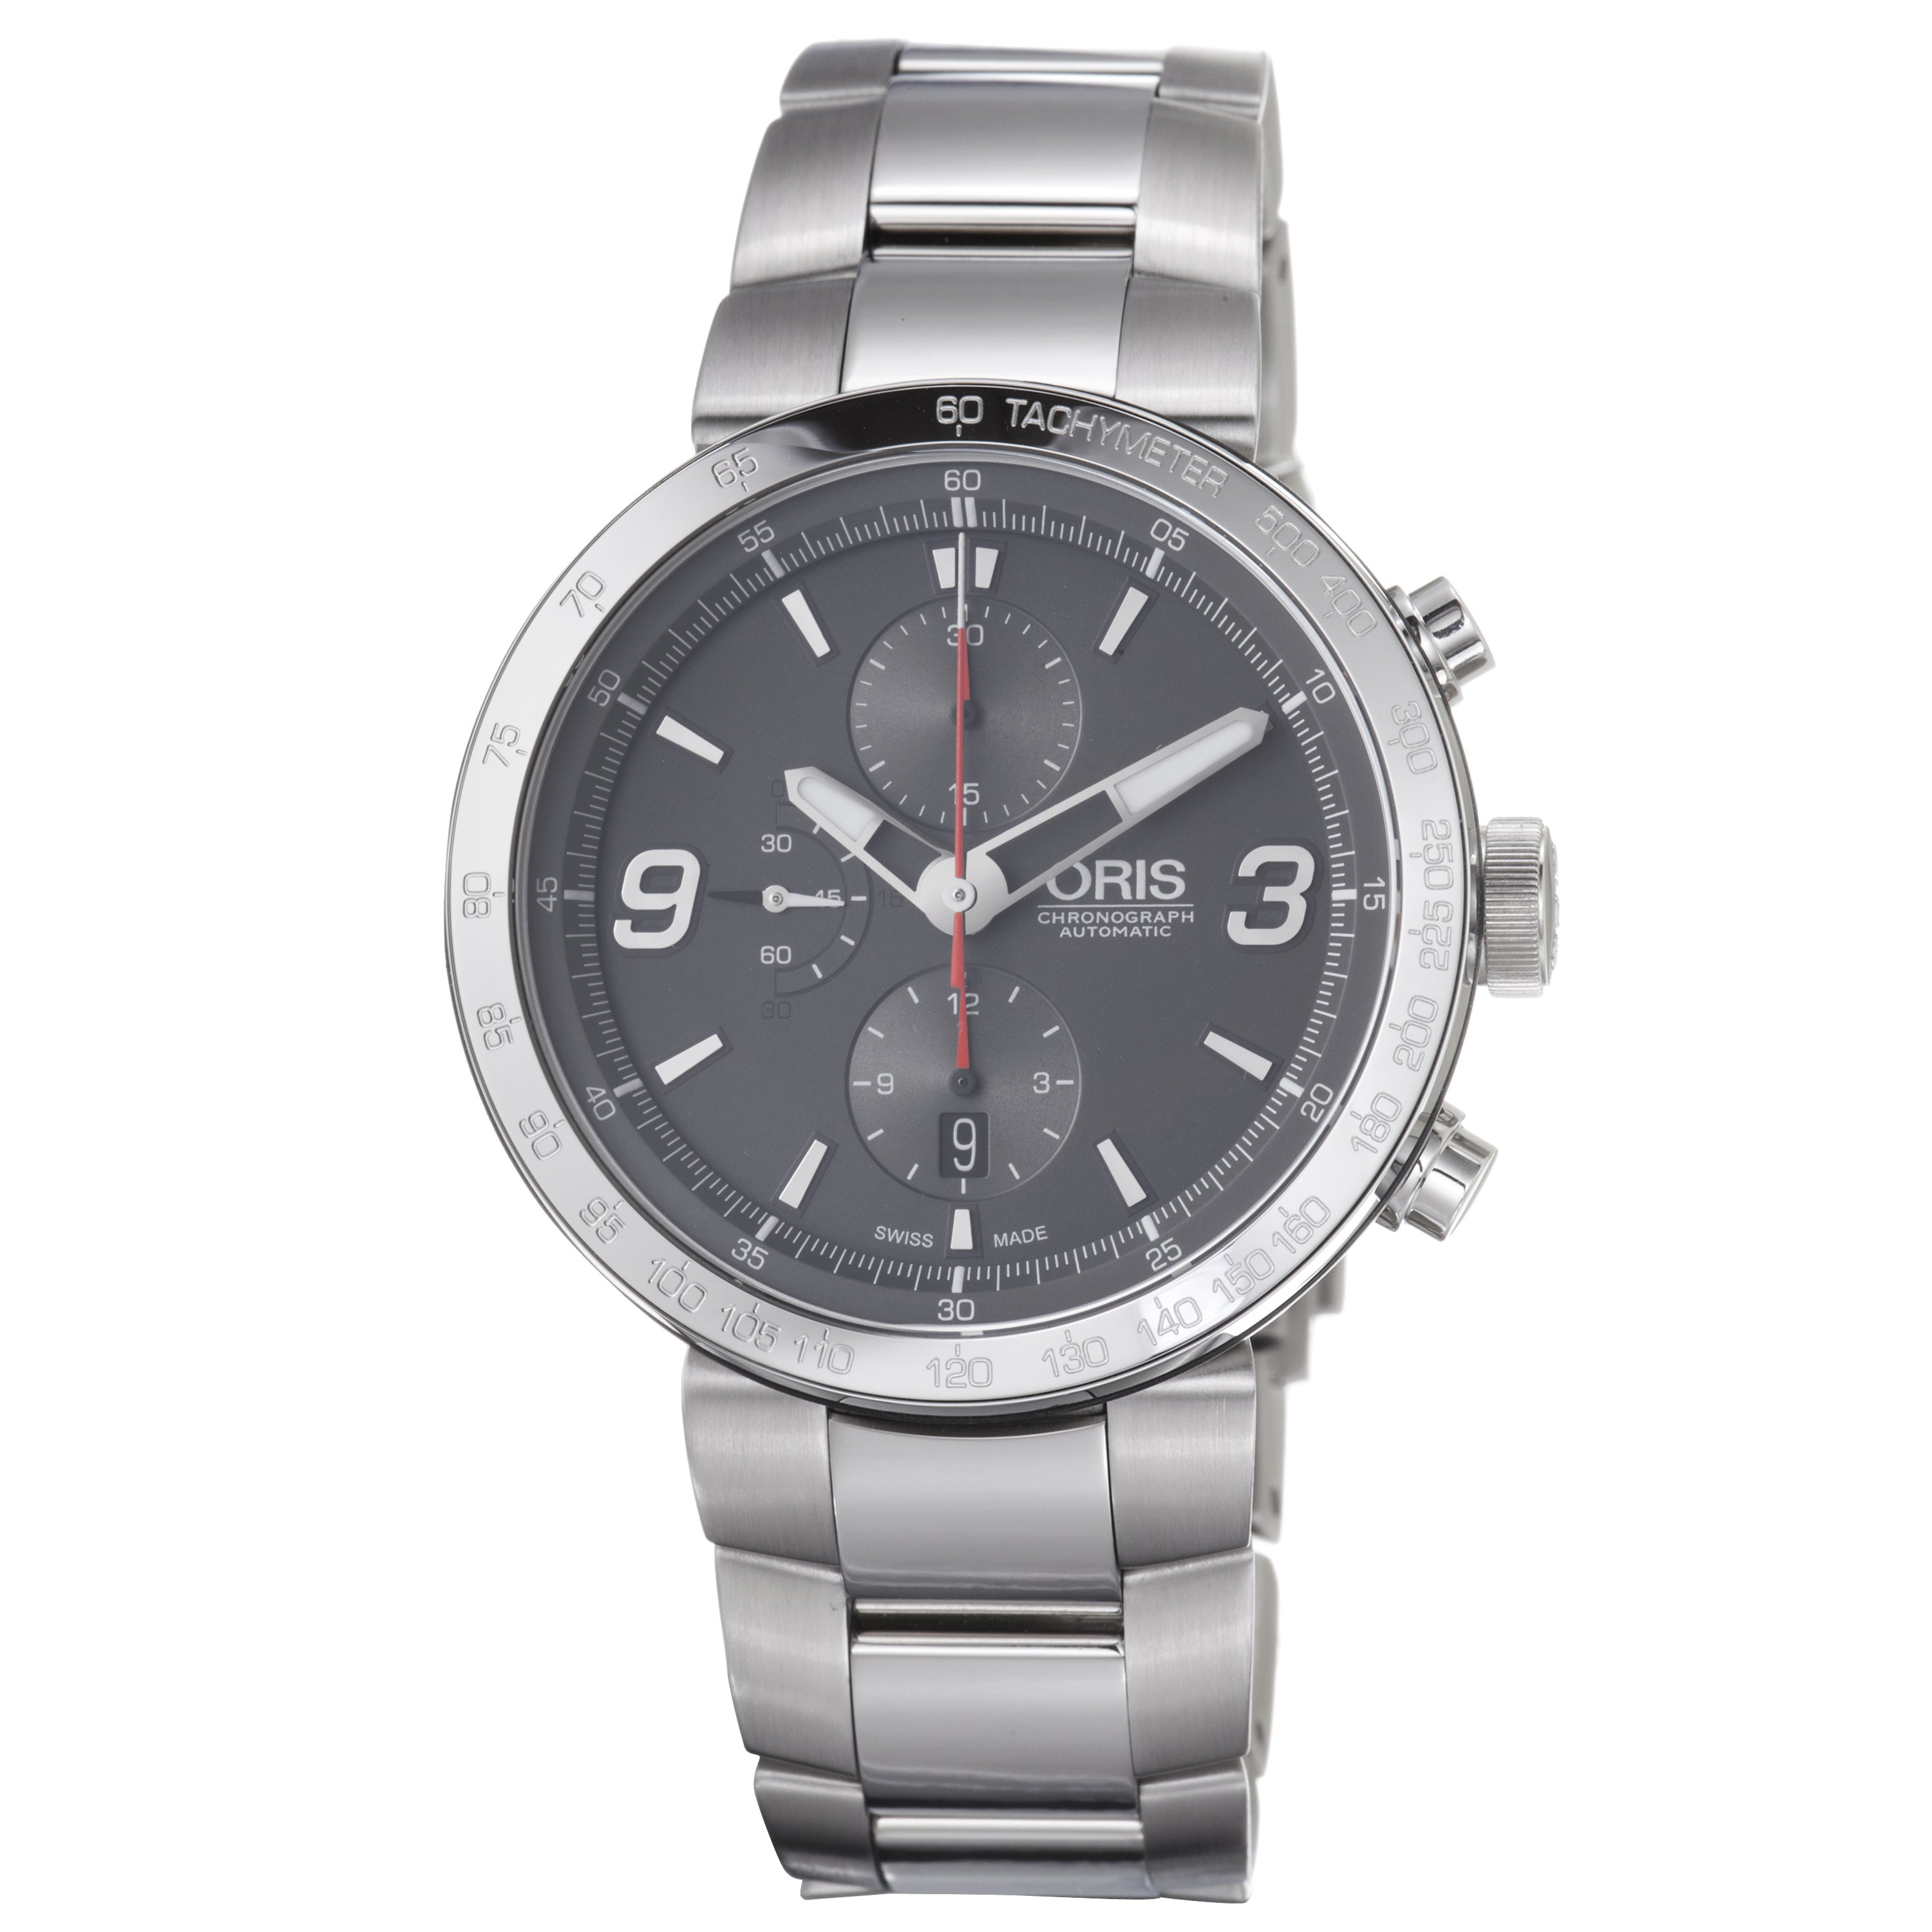 Oris Men's 'TT1 Chronograph' Grey Dial Stainless Steel Automatic Watch